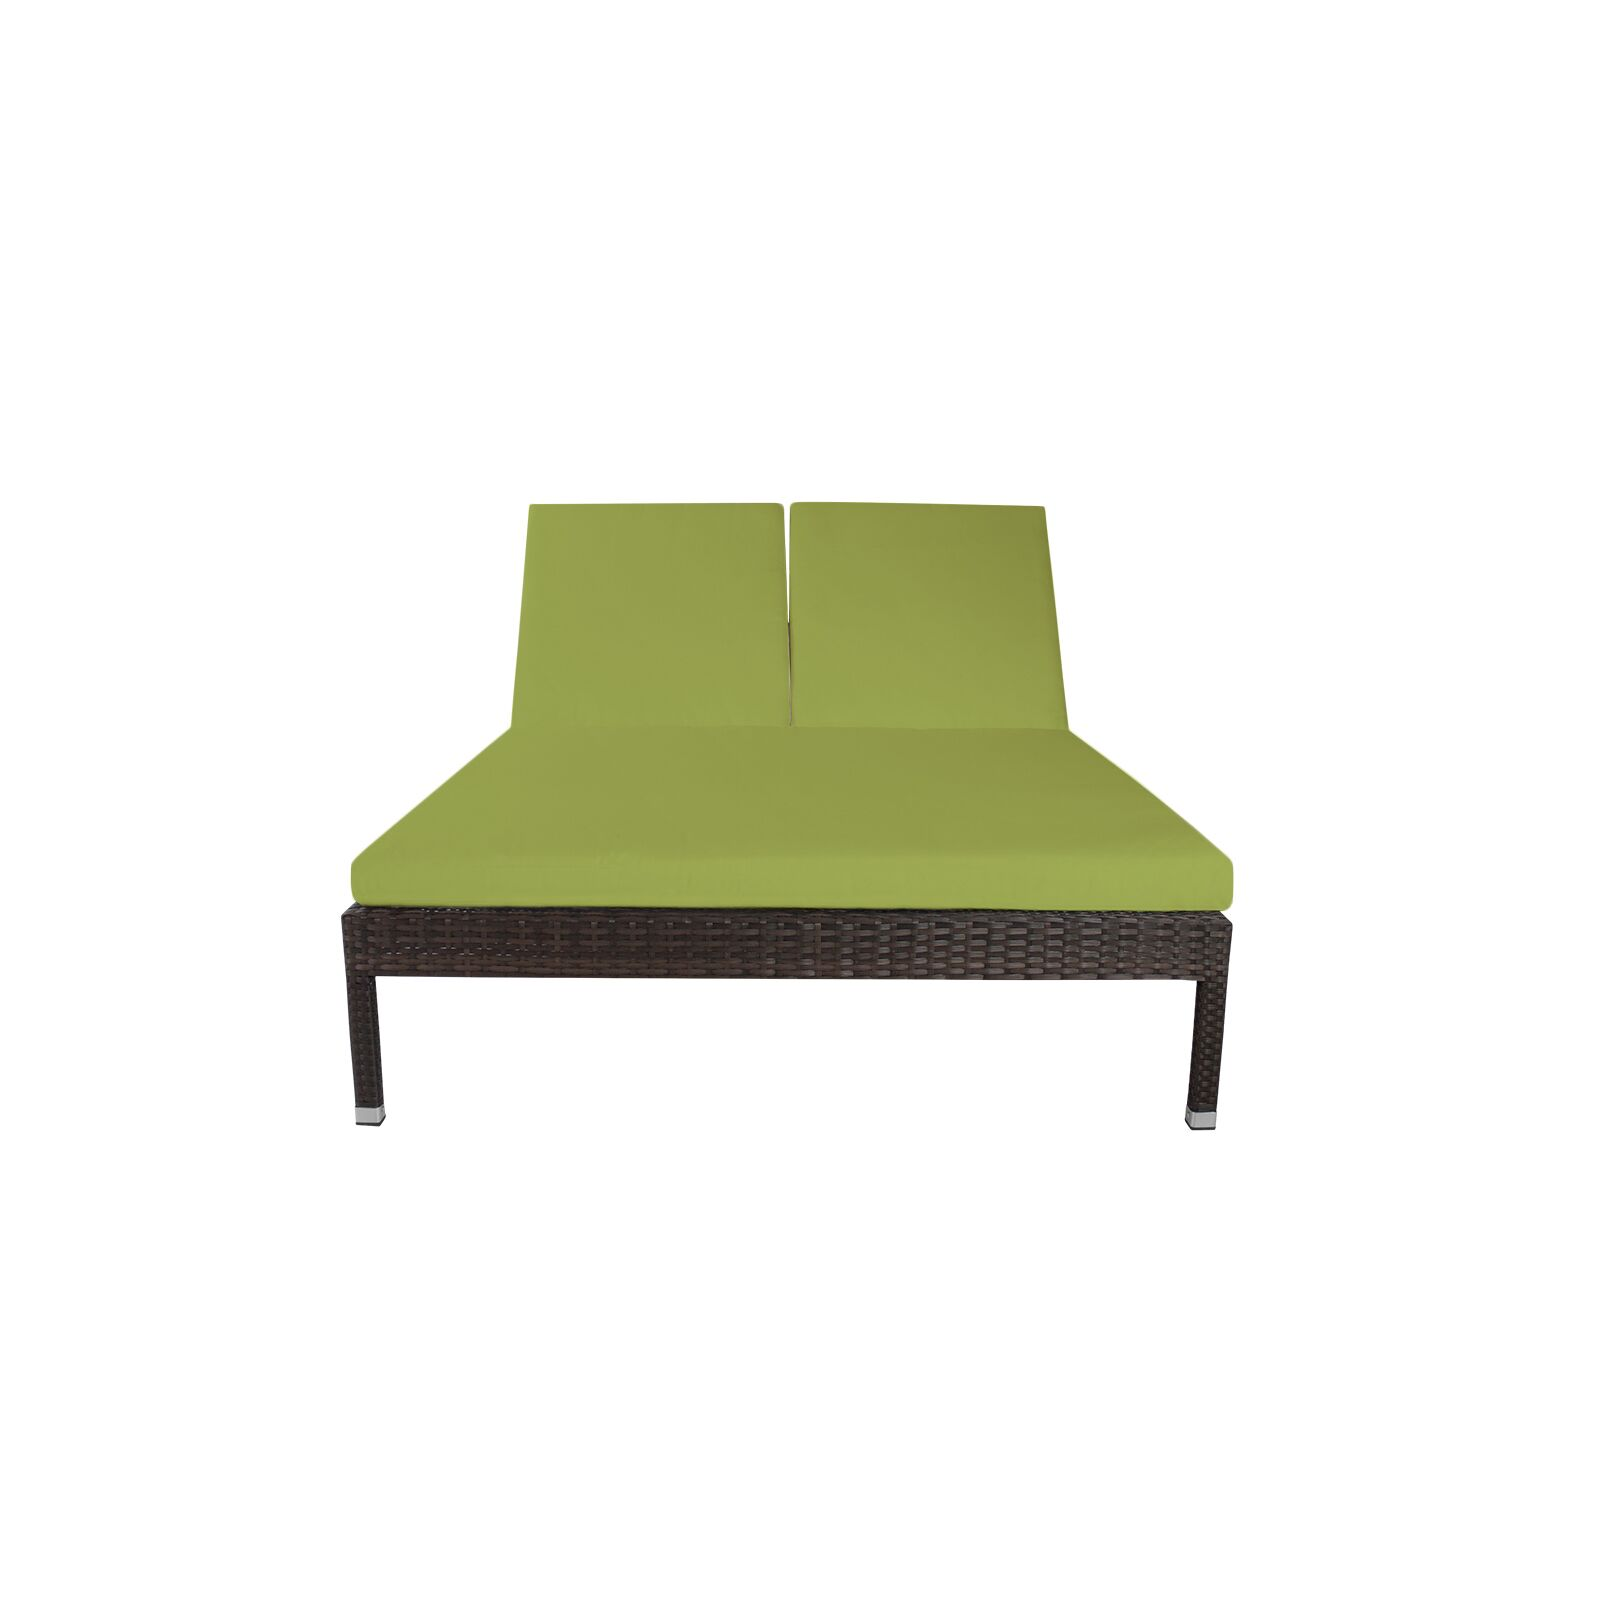 Roque Double Chaise Lounge with Cushion Fabric Color: Sunbrella Parrot